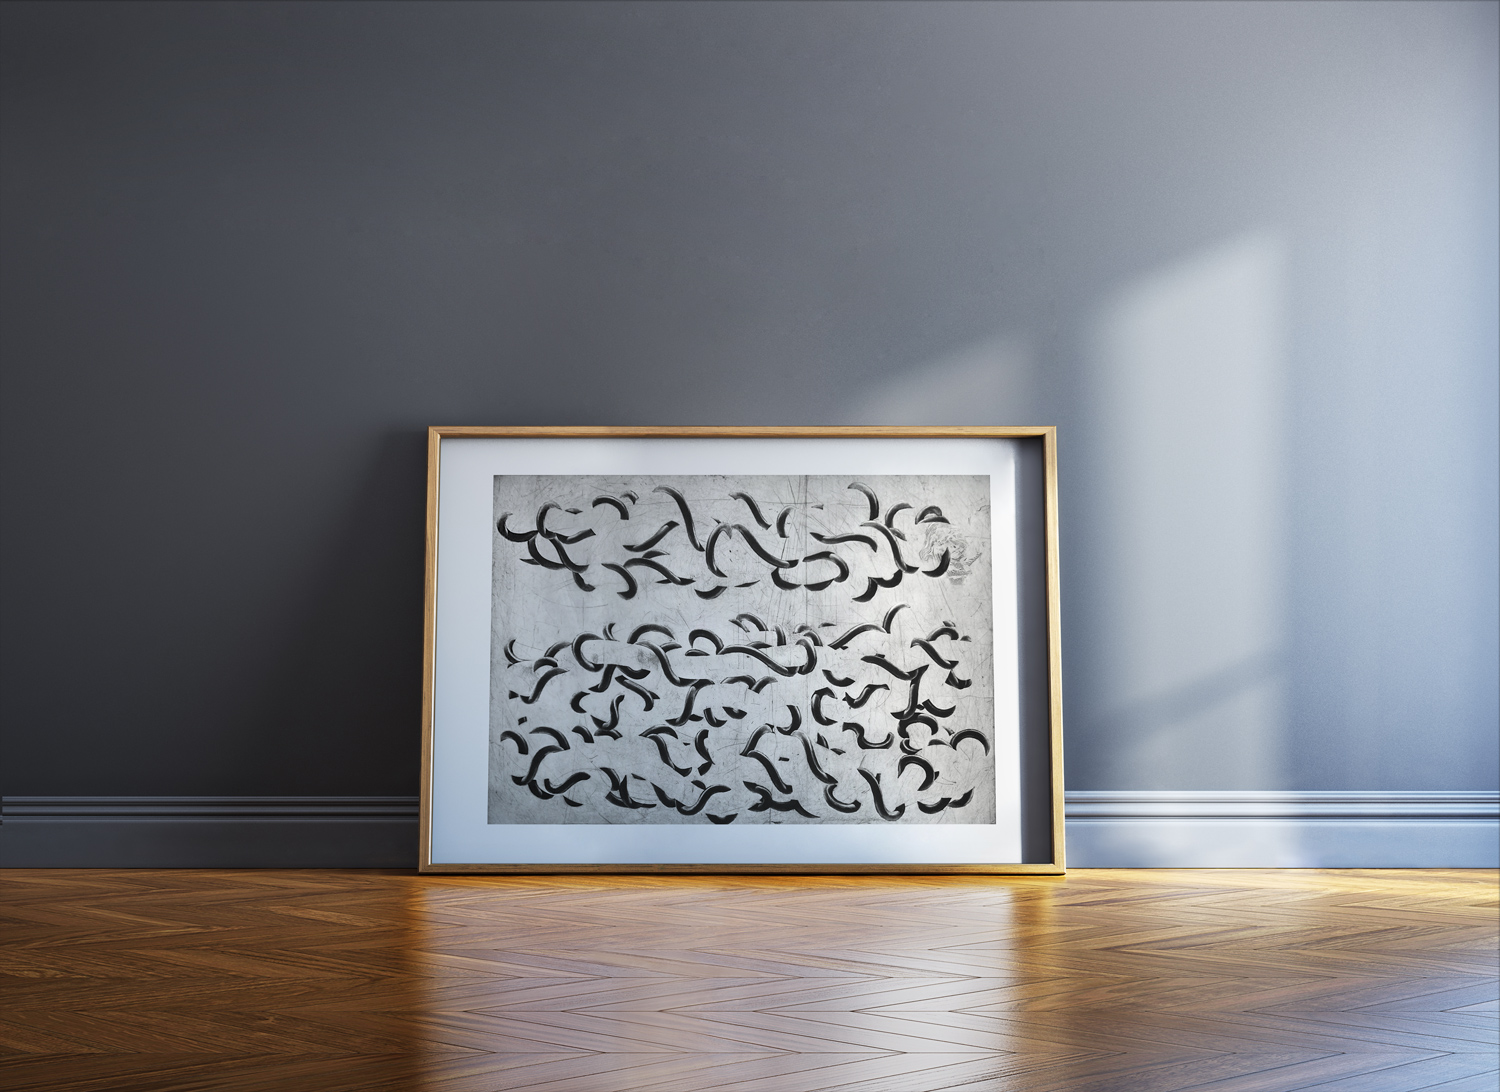 art-prints, engravings, abstract, aesthetic, monochrome, movement, patterns, black, grey, white, ink, paper, abstract-forms, architectural, autumn, danish, decorative, design, interior, interior-design, nordic, scandinavien, Buy original high quality art. Paintings, drawings, limited edition prints & posters by talented artists.